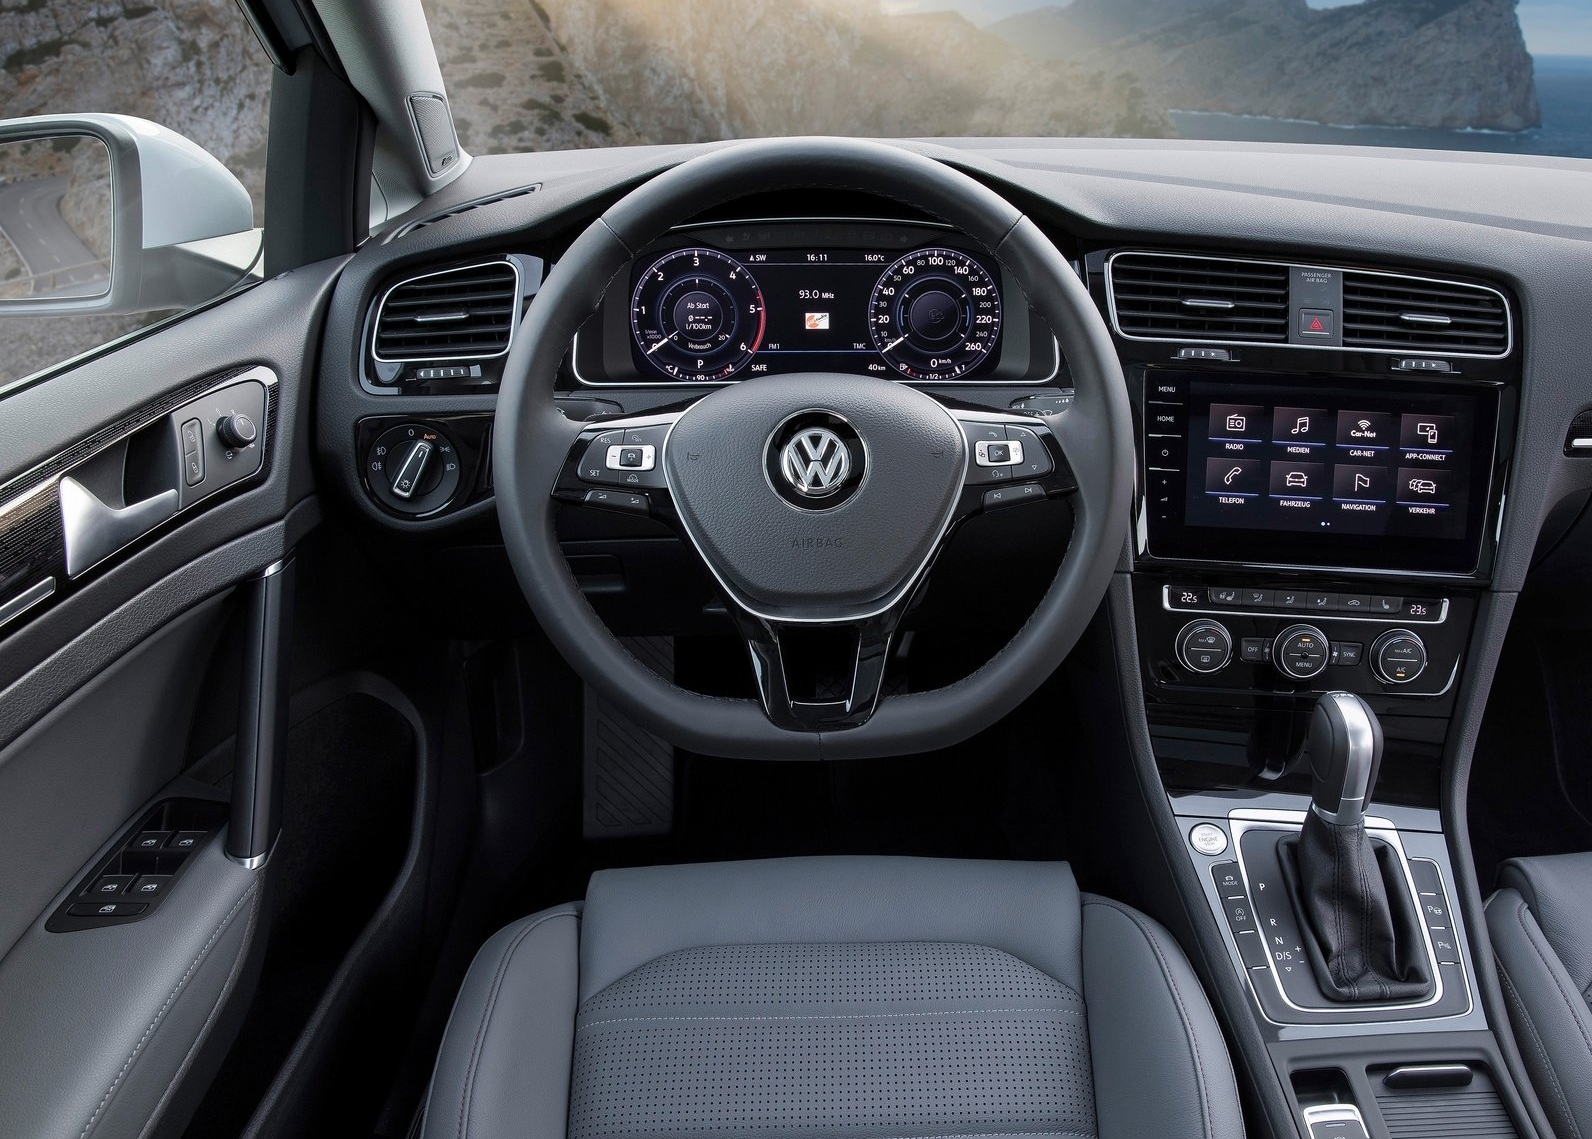 https://www.whatcar.lv/cars/Volkswagen/Golf Variant/27d8382d02d4b9a6feb6bc8b7b407de1.jpg